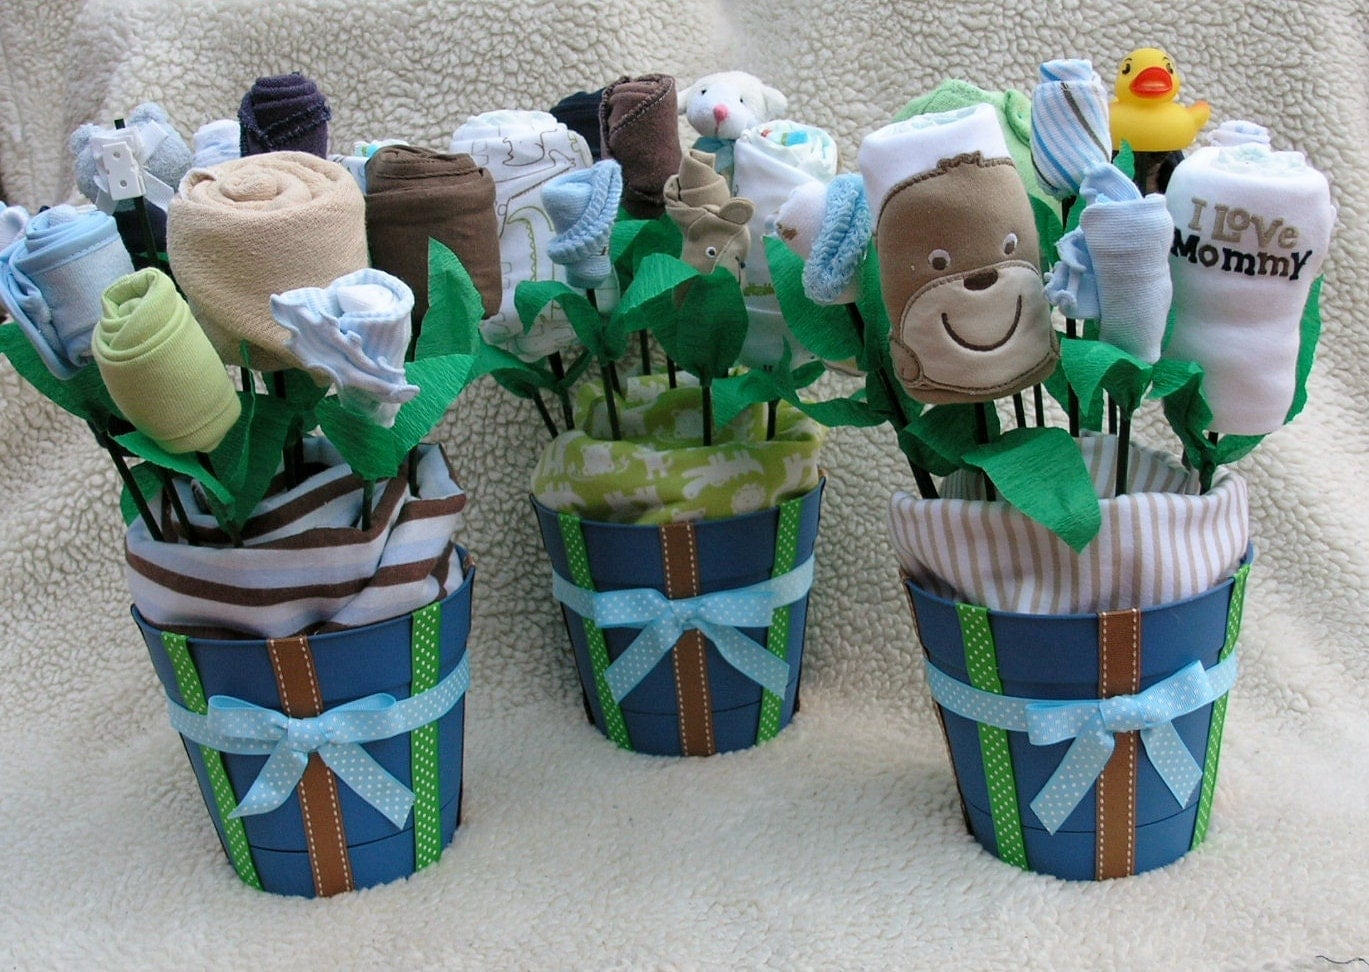 Duck baby shower on pinterest rubber duck baby boy for Baby boy baby shower decoration ideas